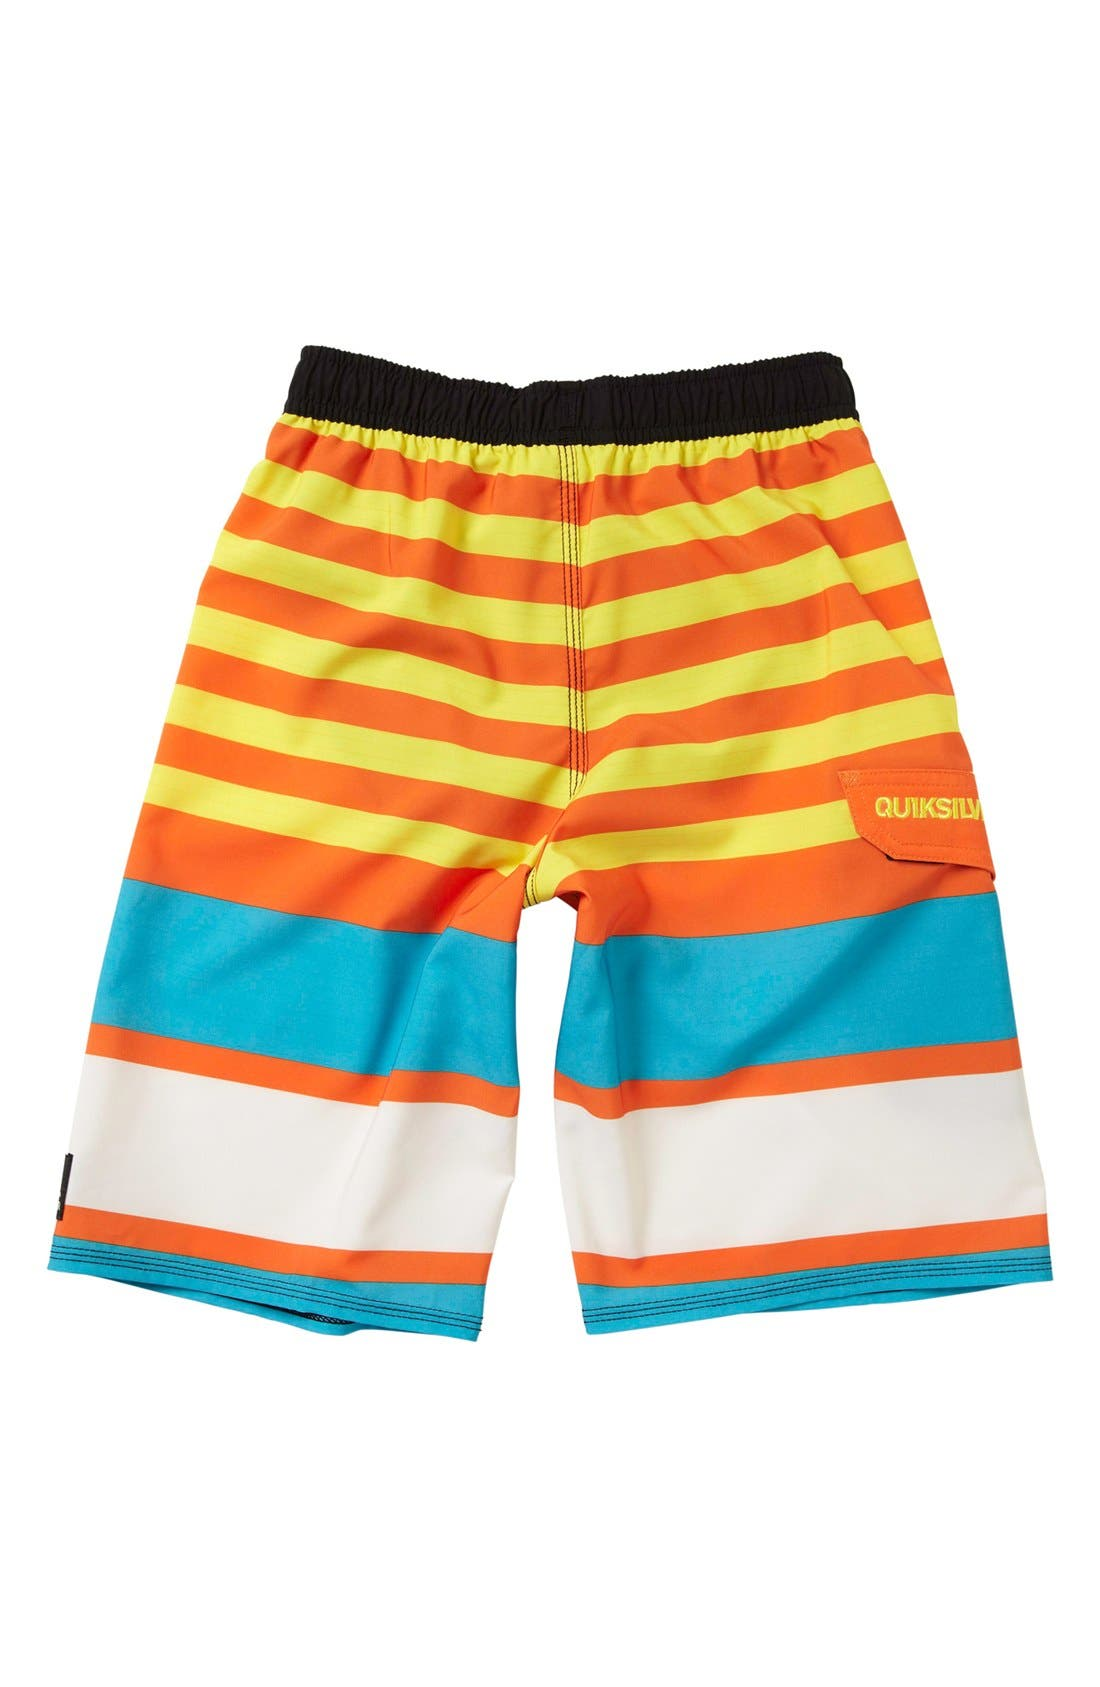 Alternate Image 2  - Quiksilver 'Why Can't You' Volley Shorts (Little Boys)